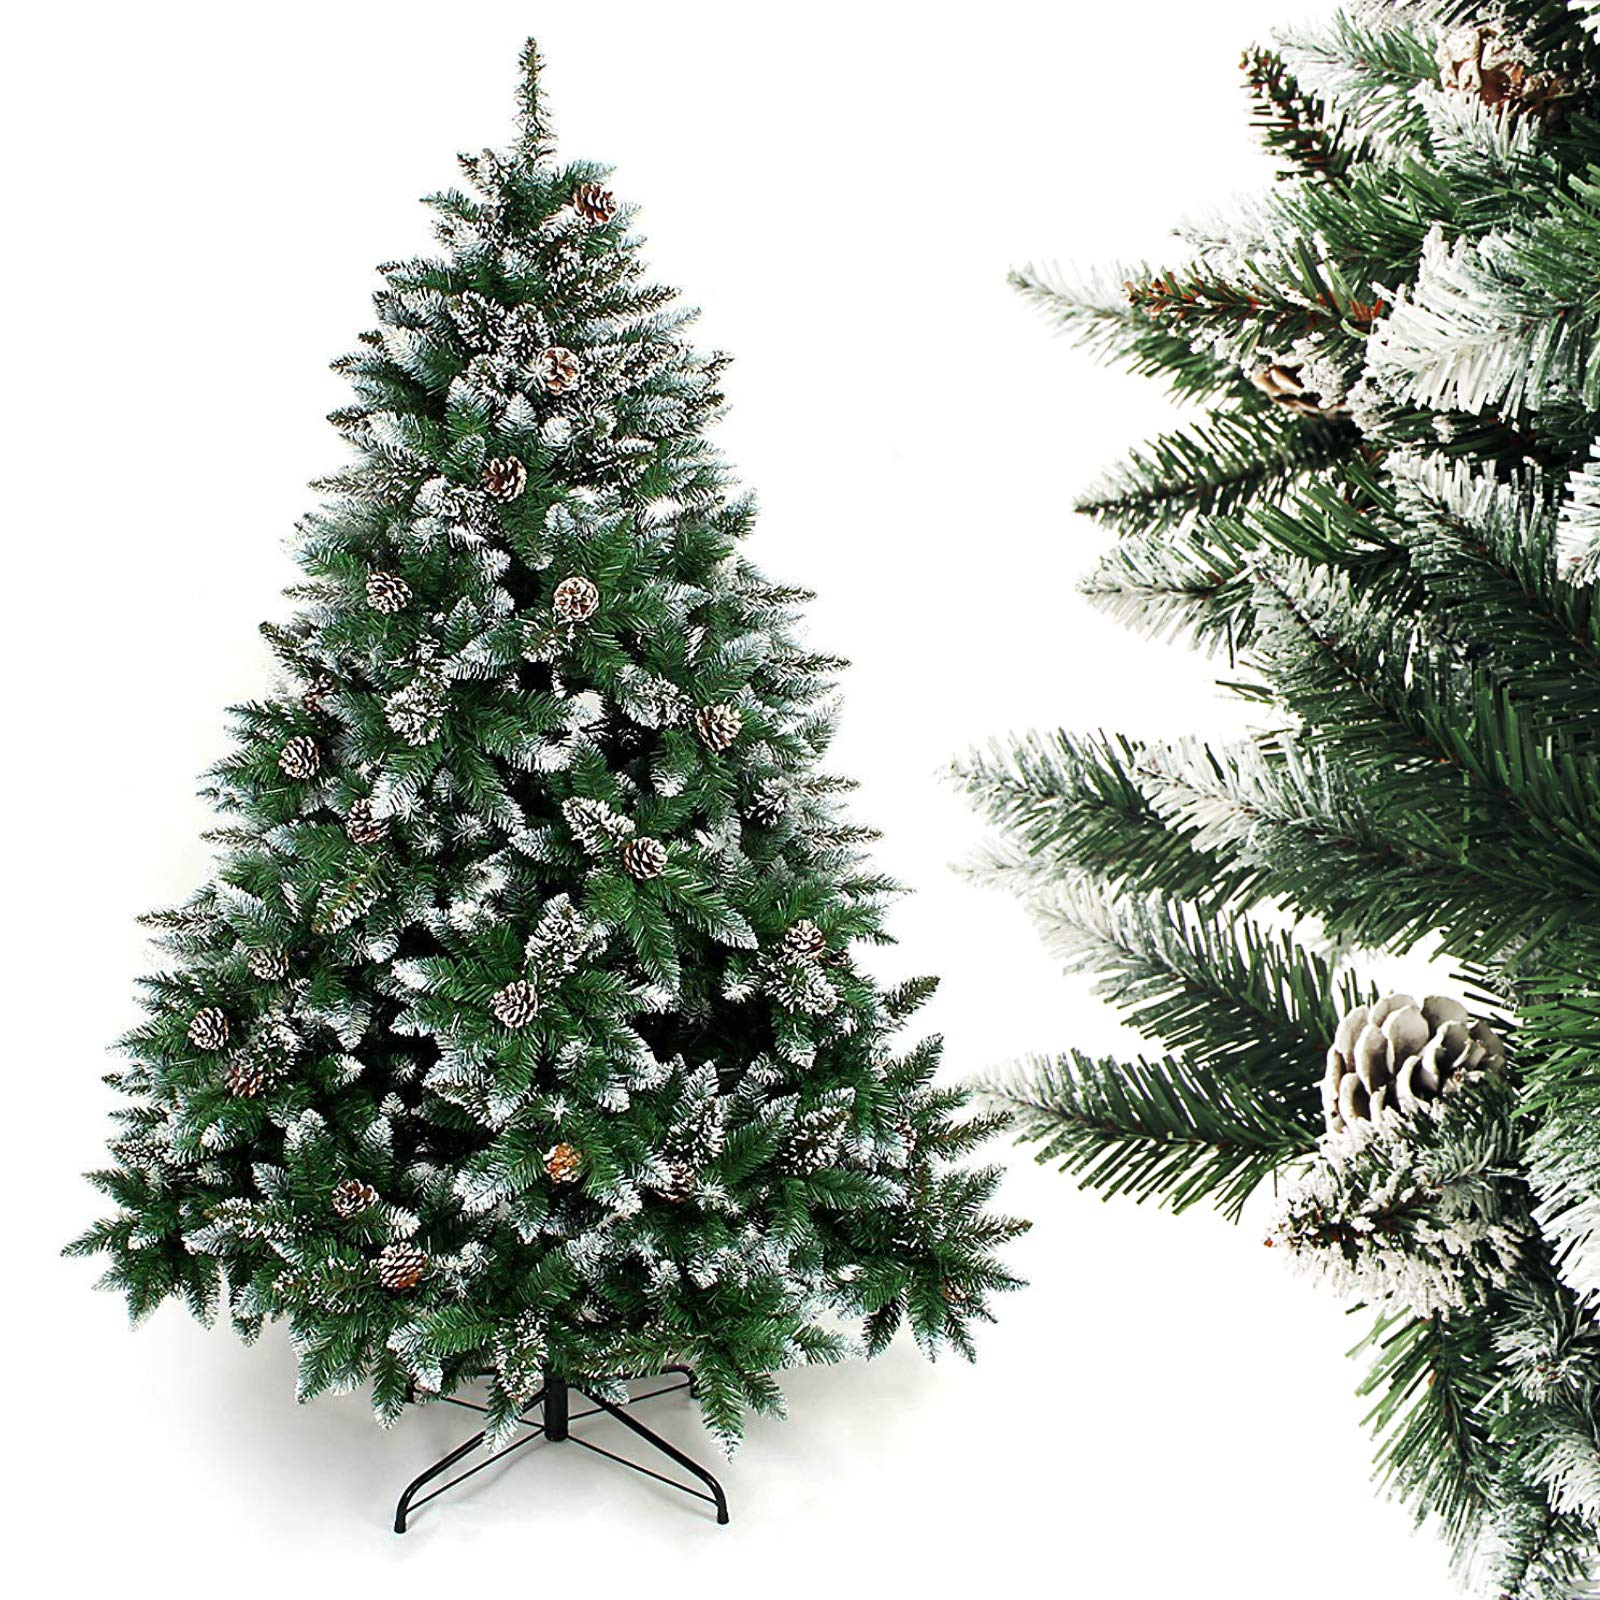 Homde Artificial Christmas Tree with Flocked Snow Pine Cone (6ft)